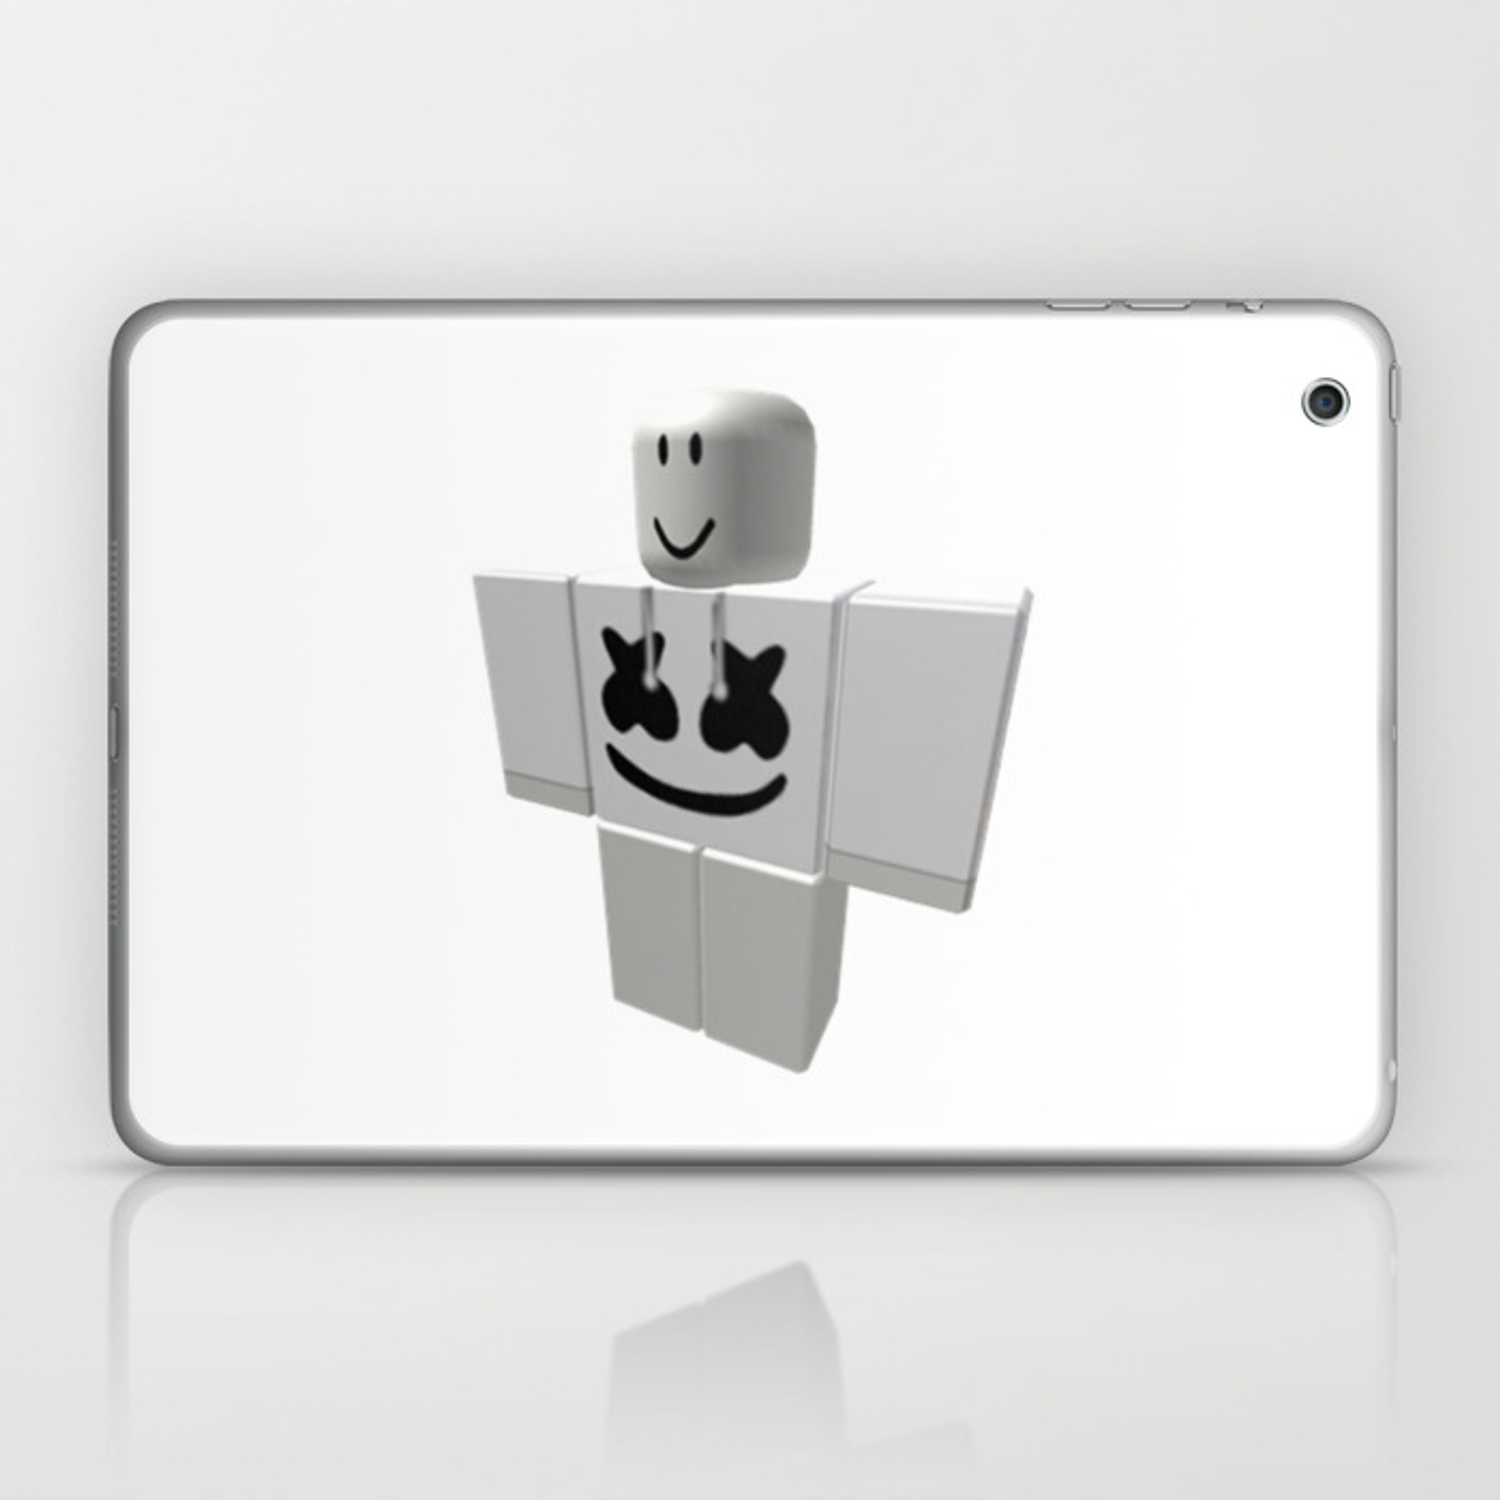 How To Make A Shirt On Roblox On Ipad 2019 « Alzheimer's Network of